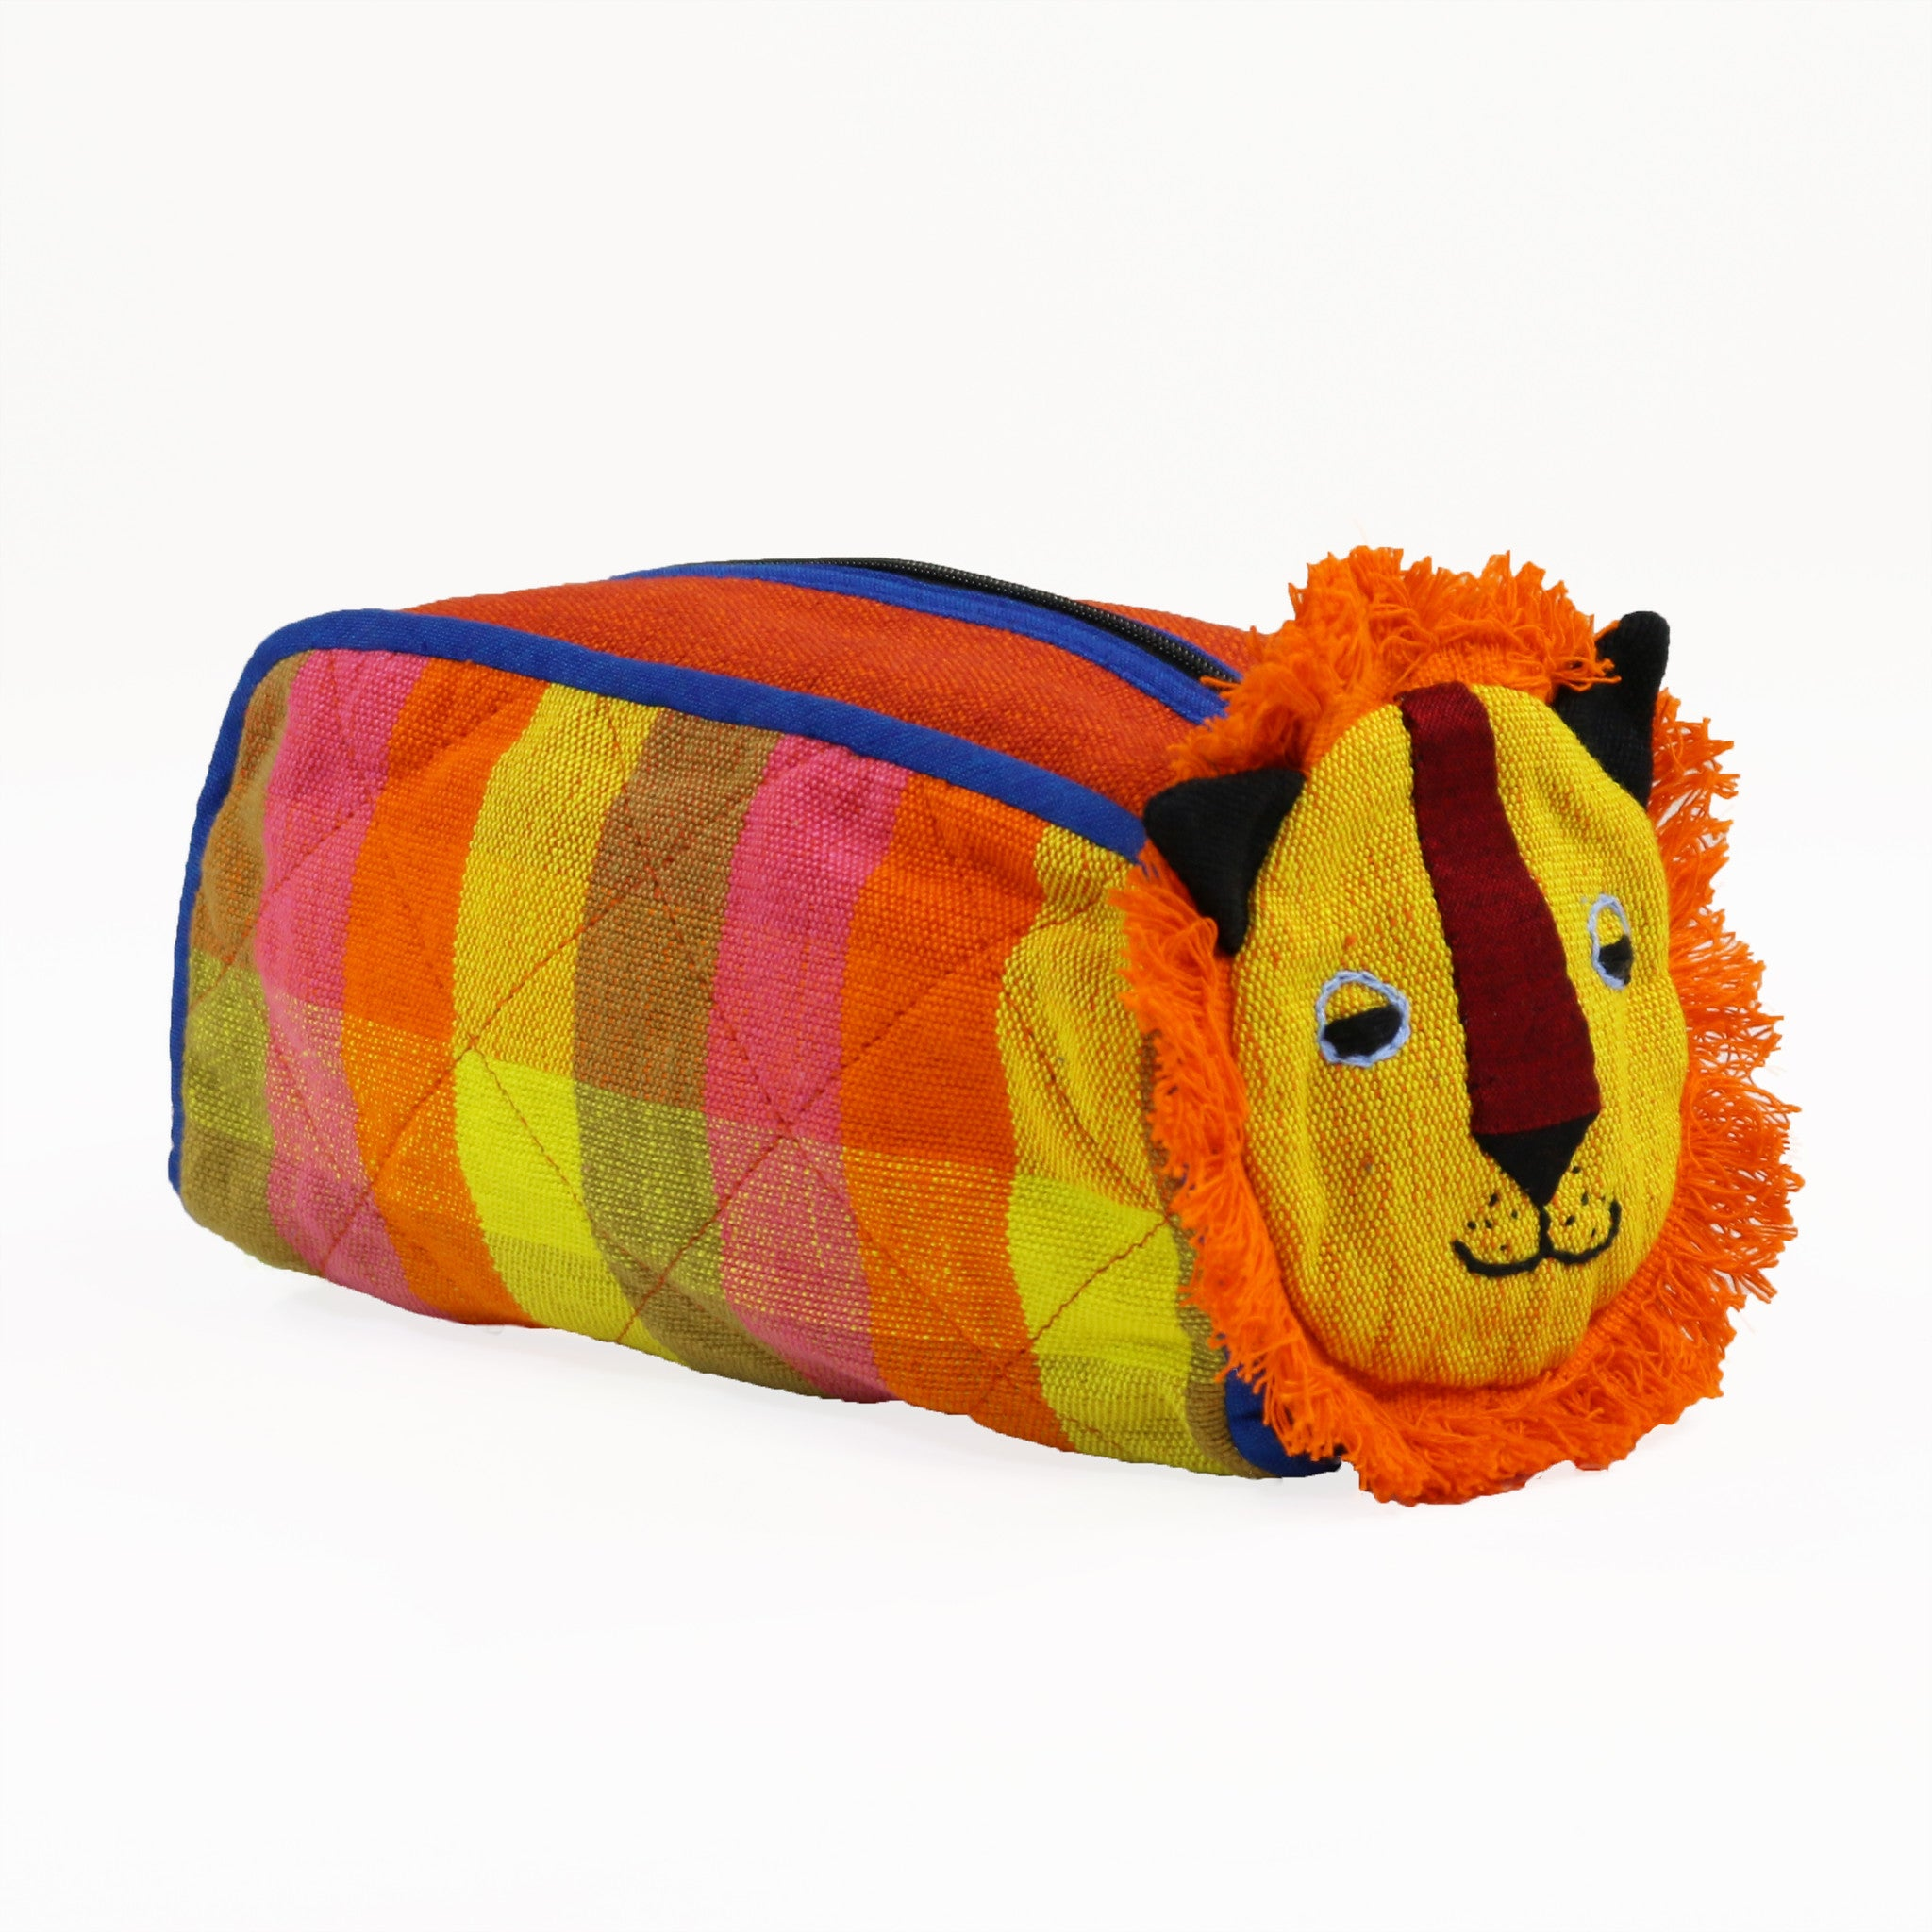 Lion Zip Pouch - Tangerine fabric